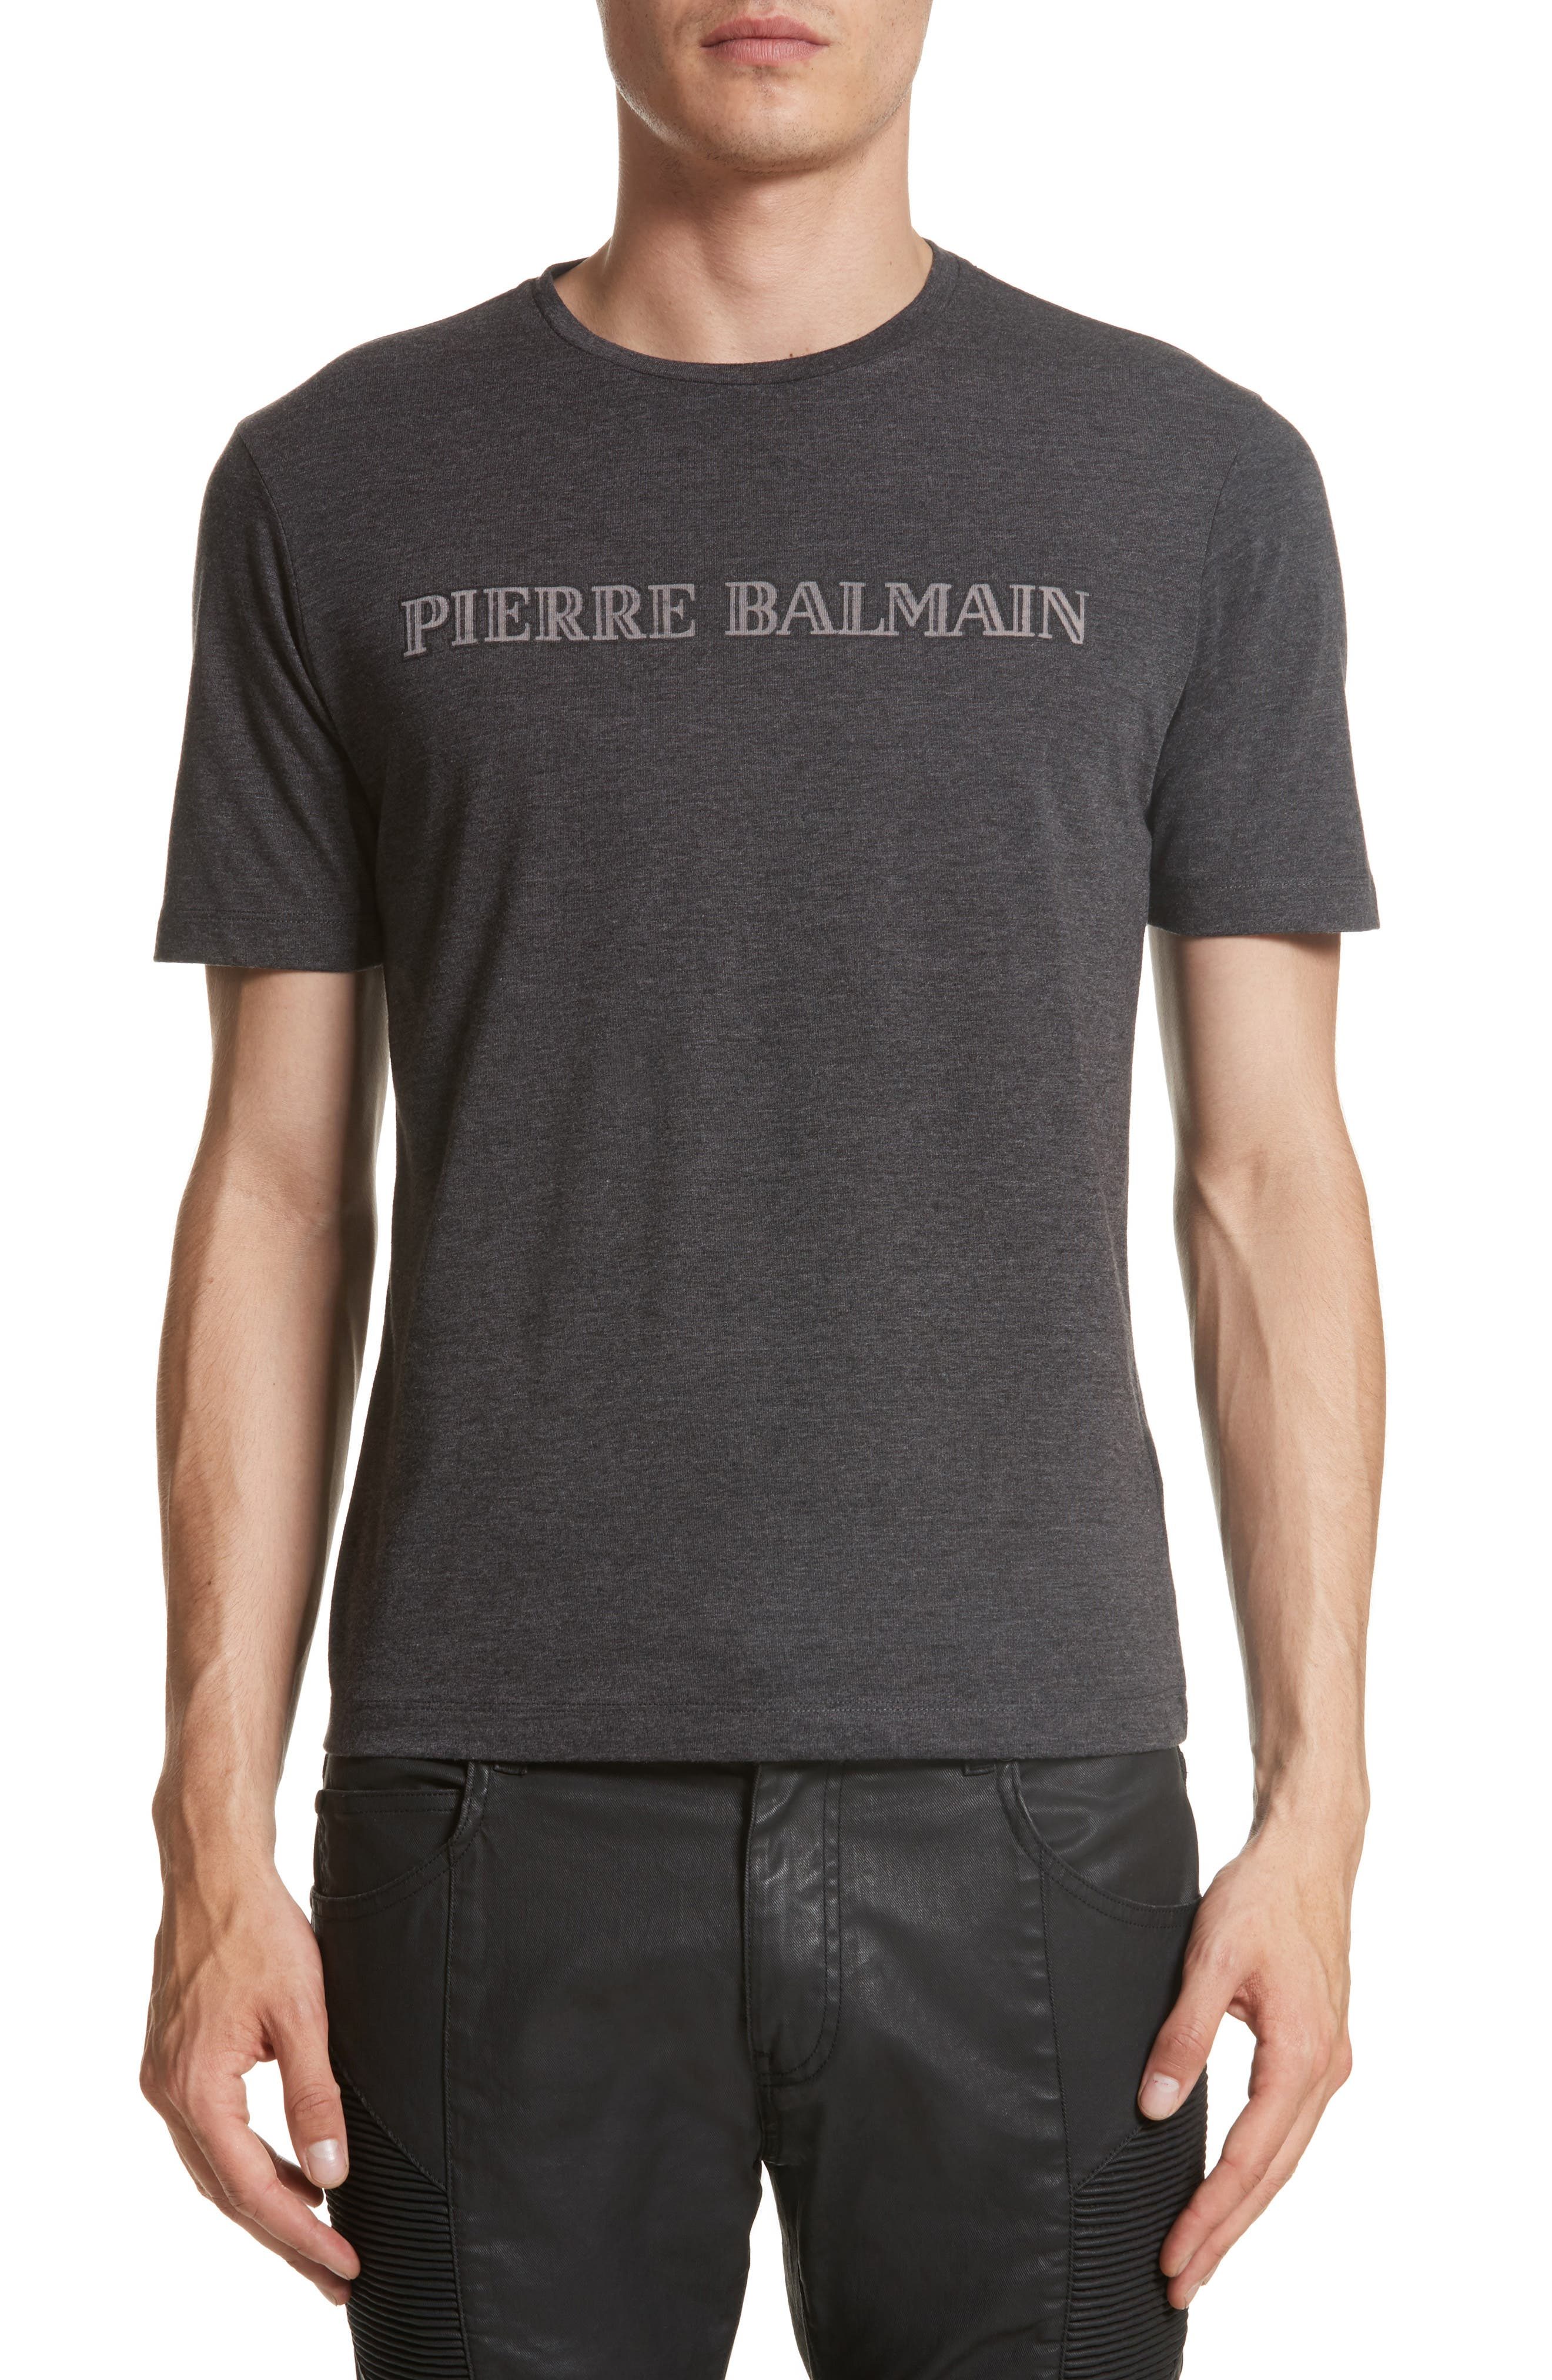 Pierre Balmain Logo Graphic T-Shirt